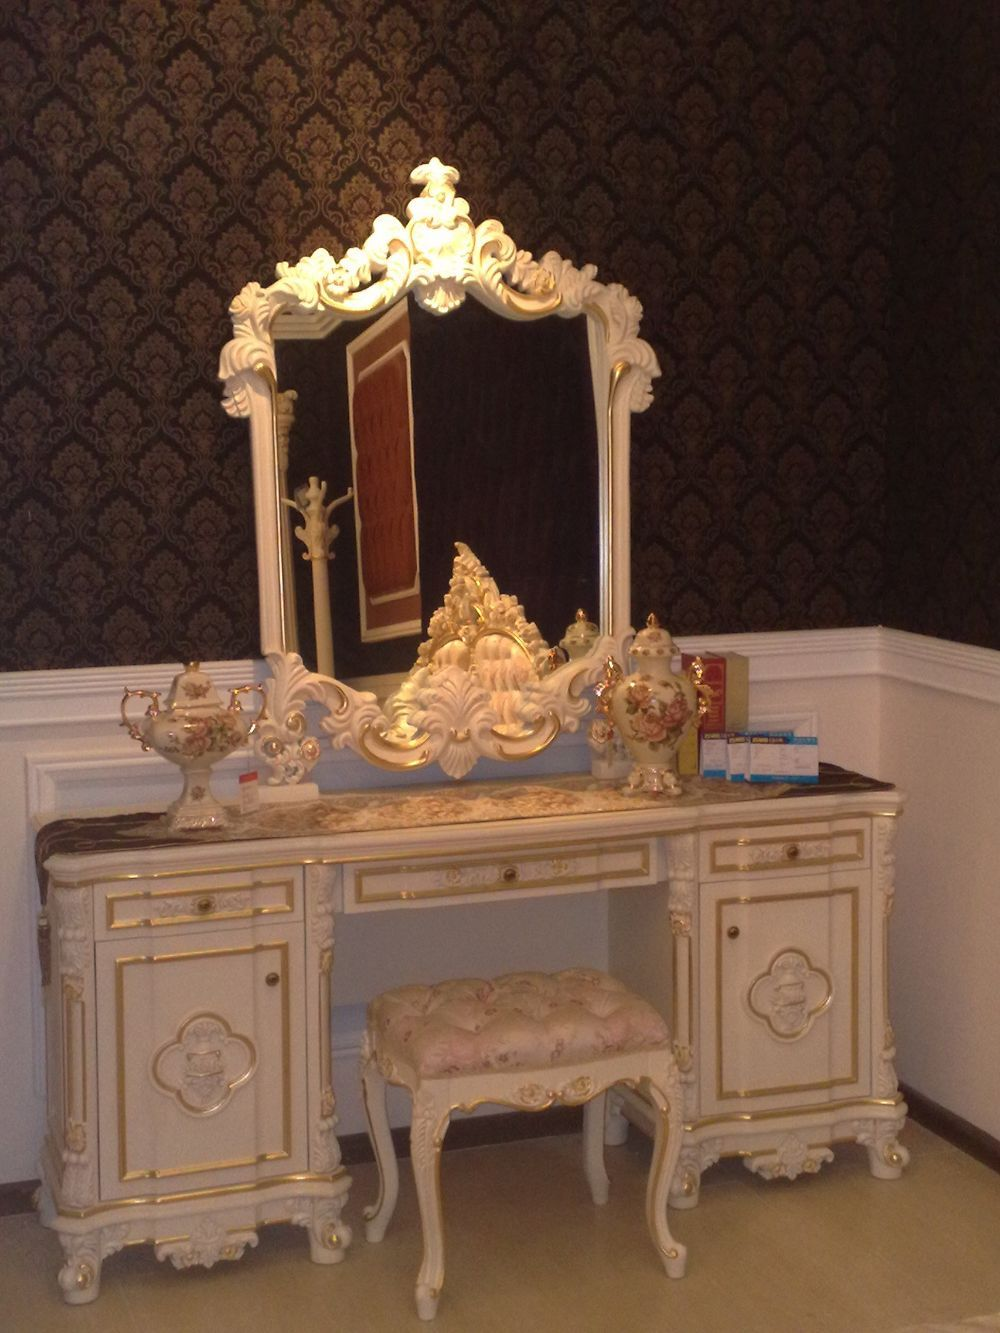 Vanity dressing table boutique boudoir style vanity fair vanity dressing table boutique boudoir style geotapseo Gallery